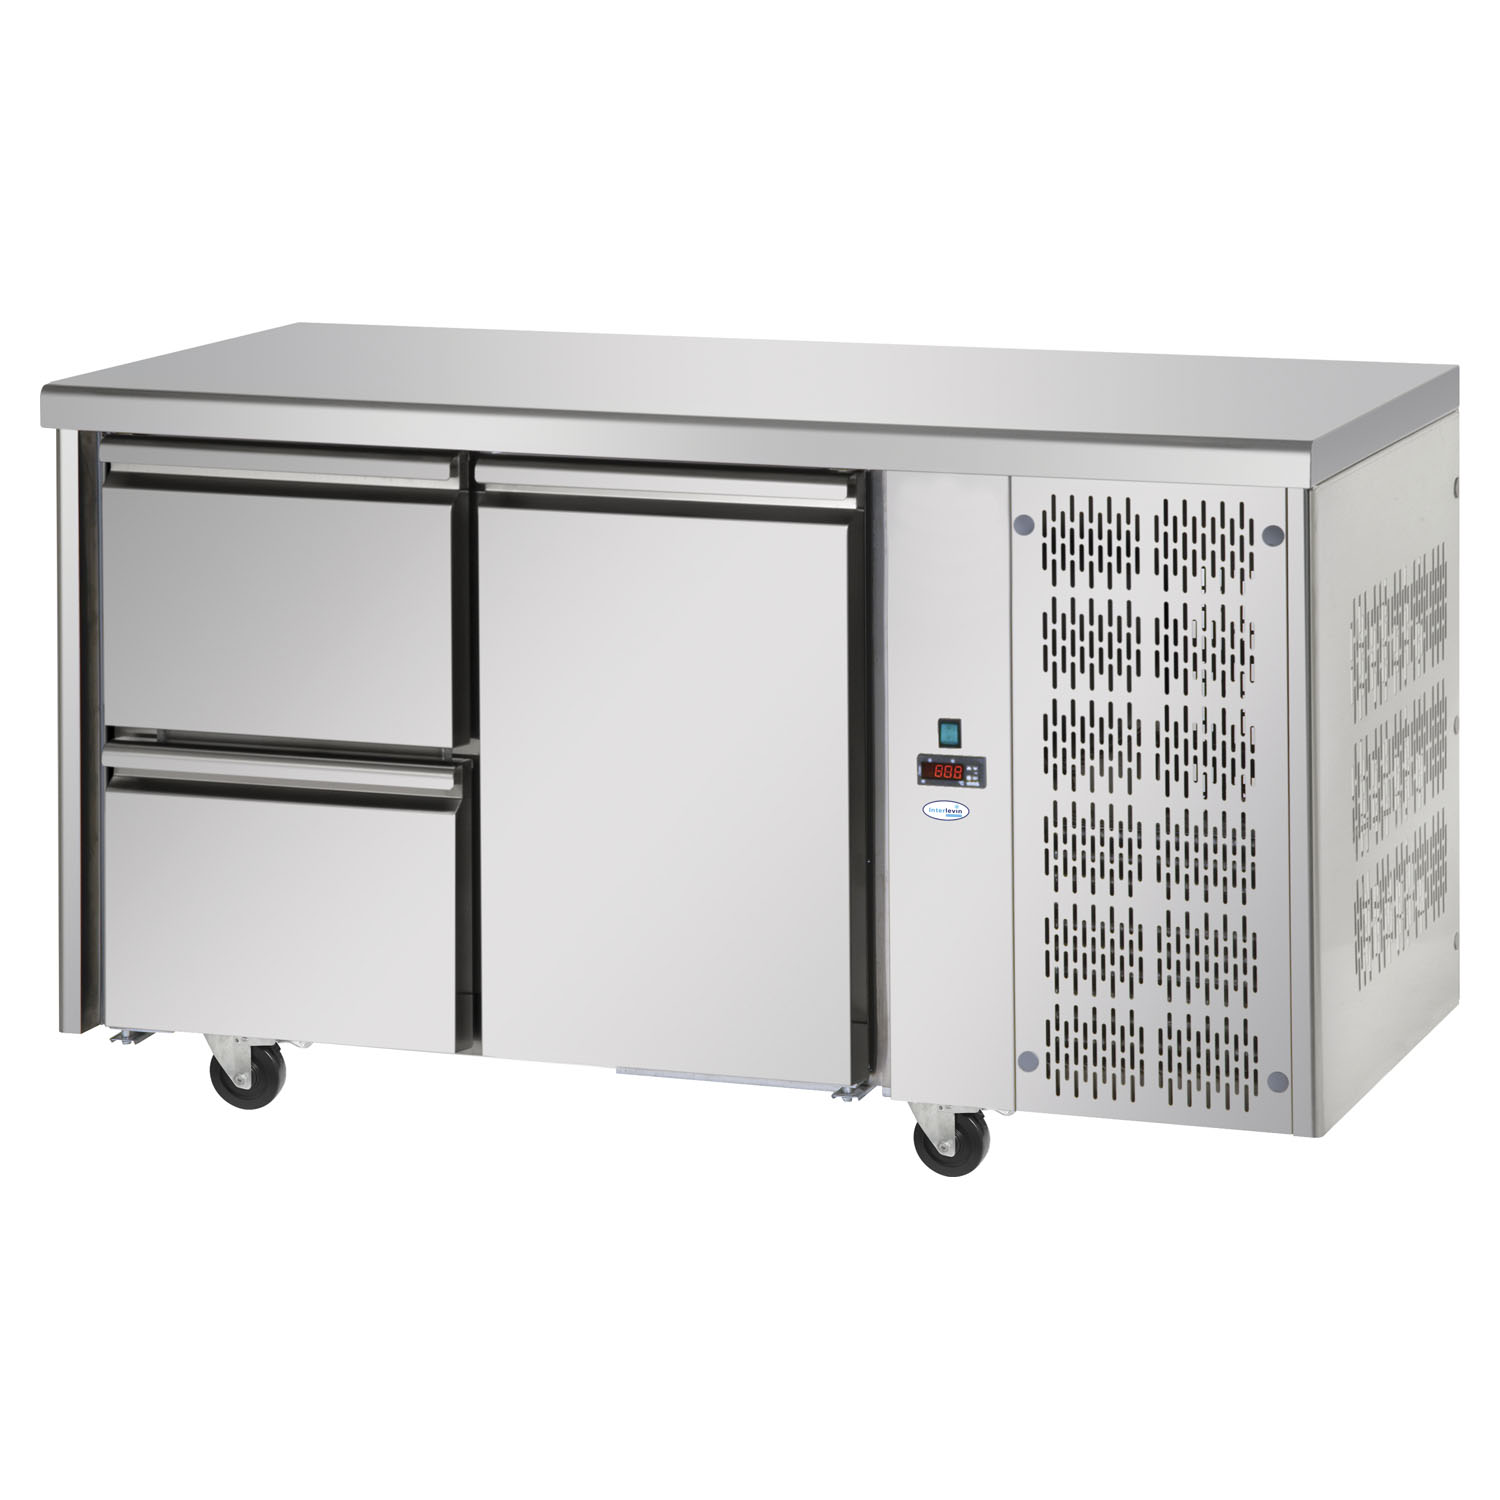 Interlevin Italia TF02 SS Gastronorm 2-Door Stainless Steel Counter Chiller opt